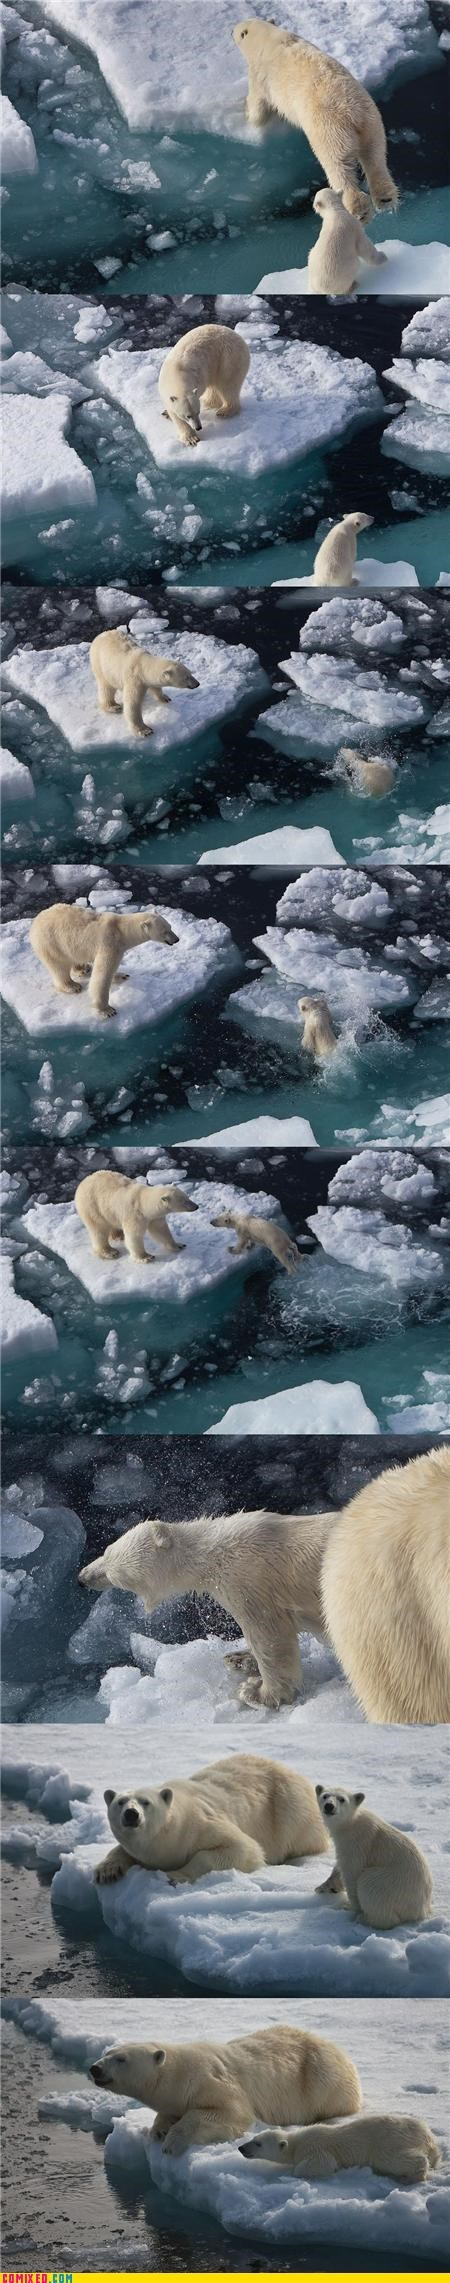 animals global warming polar bear social good saturday swim - 5049771520